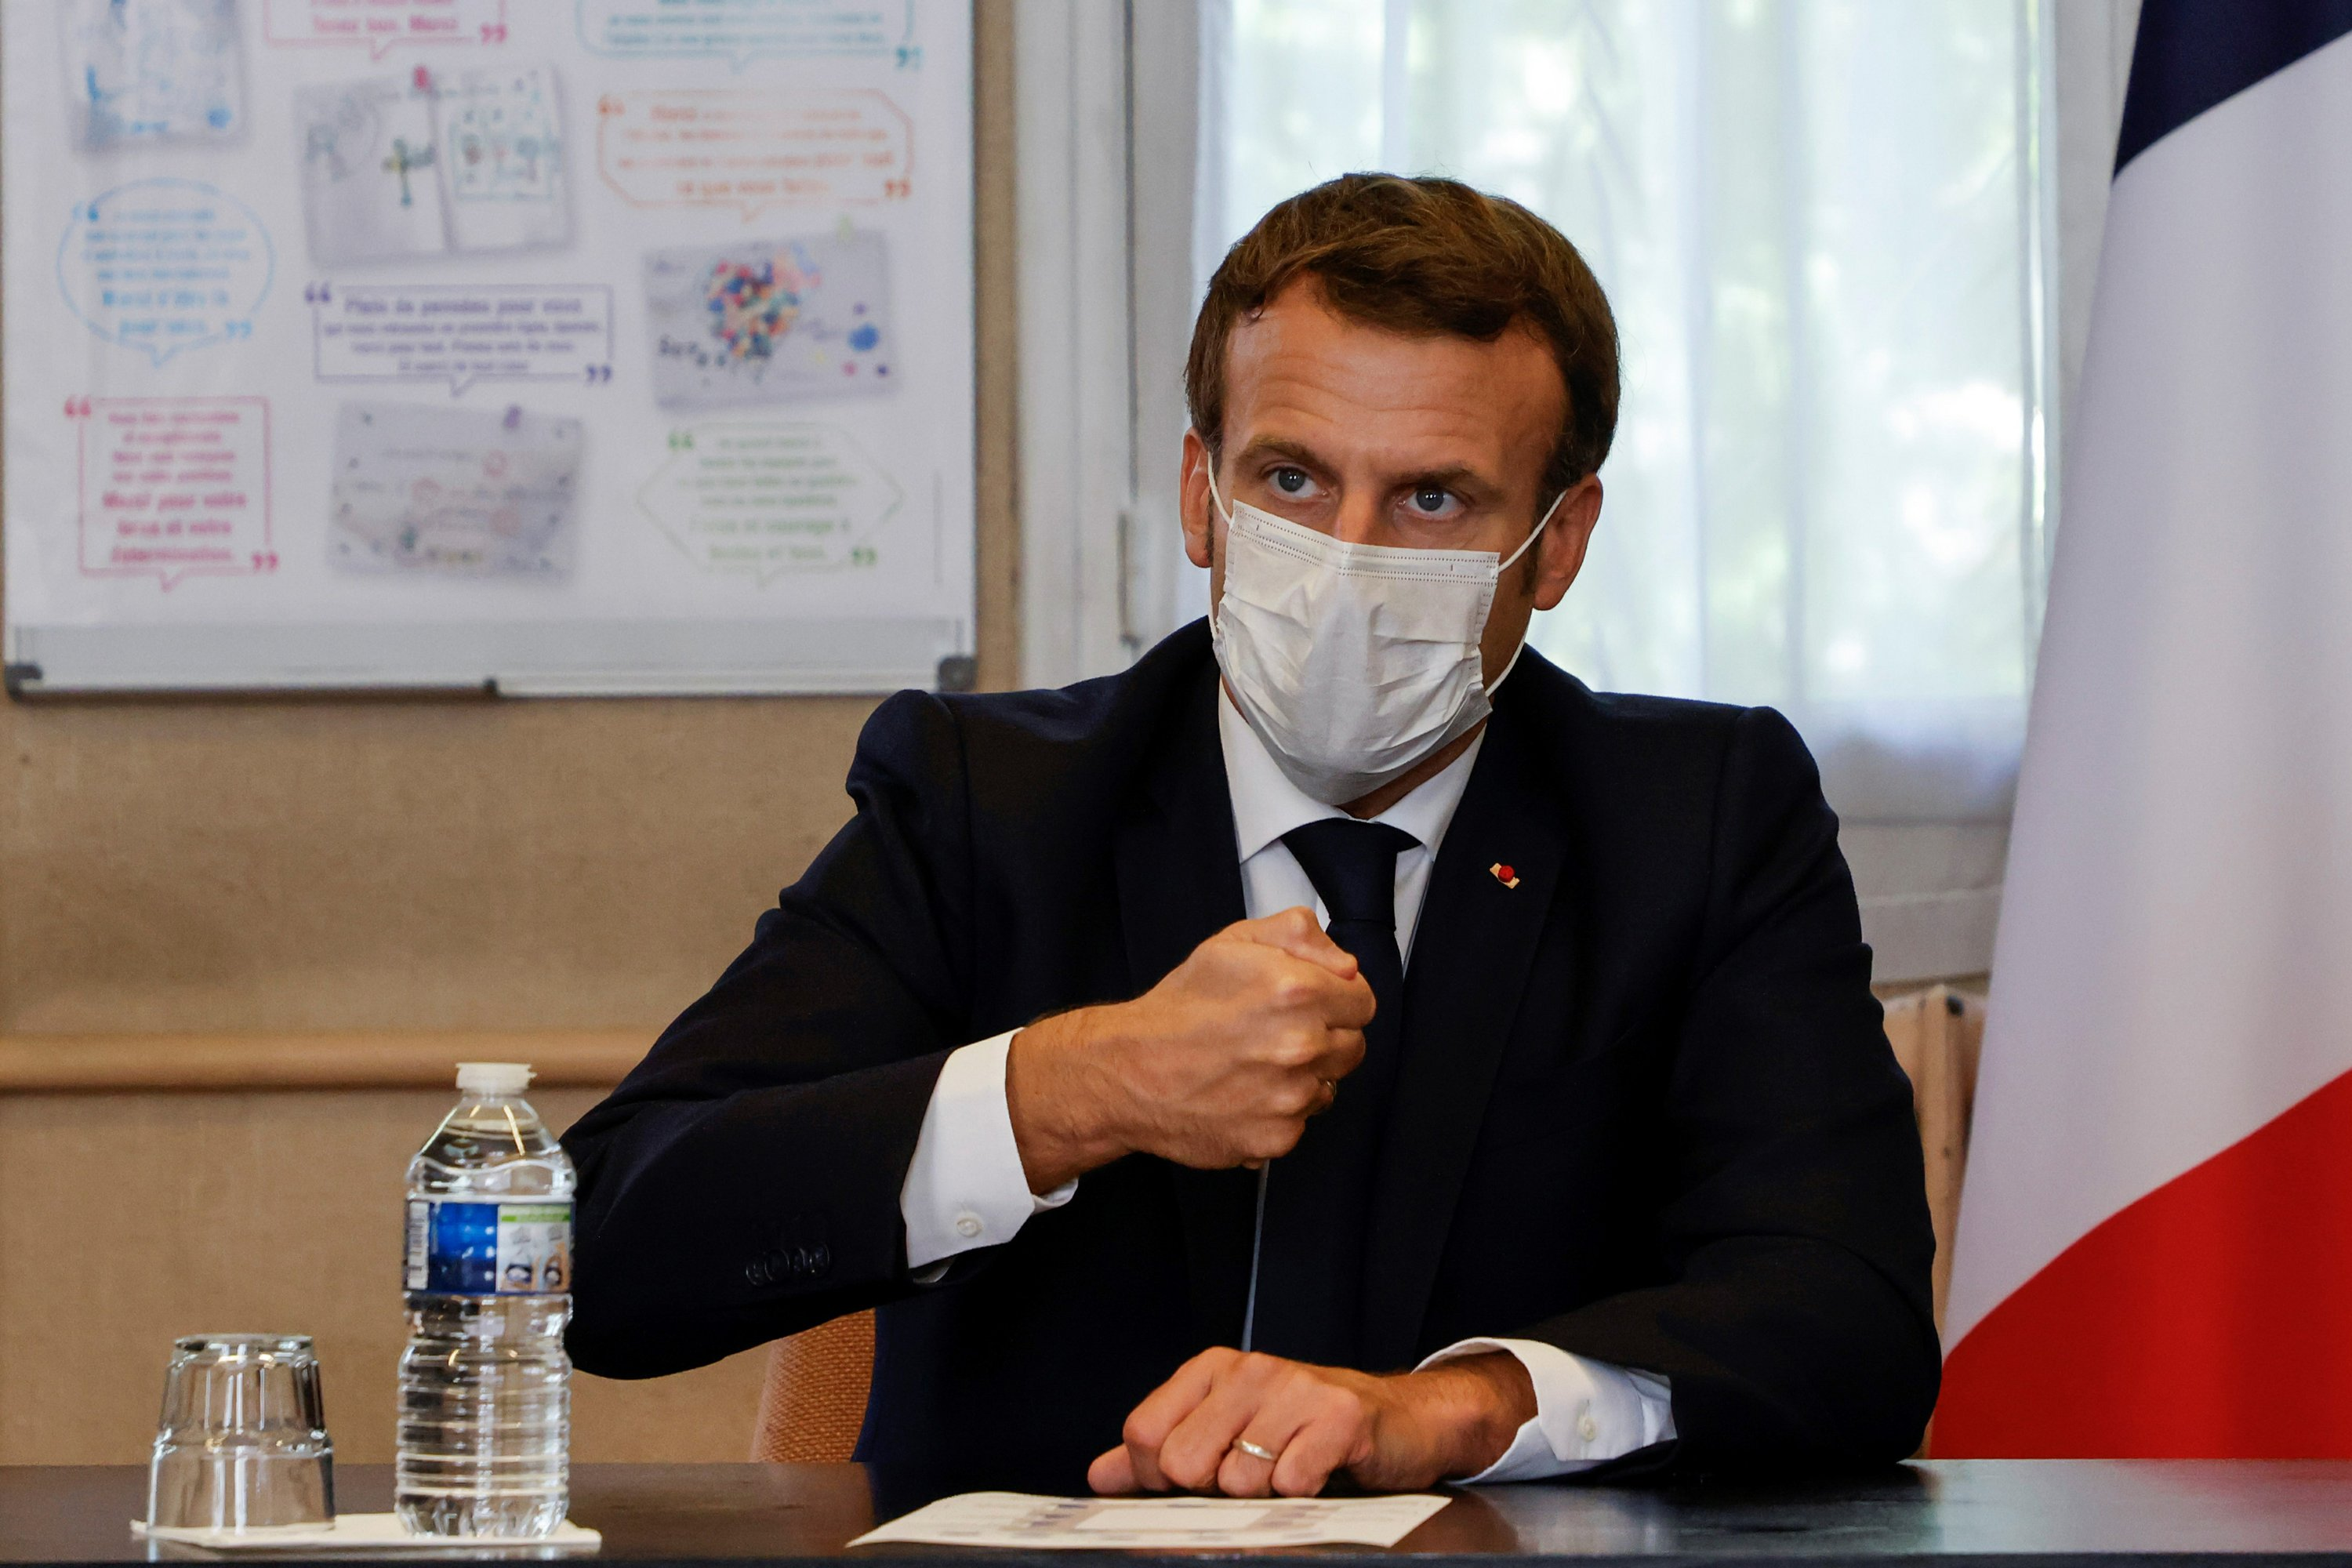 BREAKING: France has reached over 1 million confirmed virus cases amid pandemic's resurgence, French health authorities say.